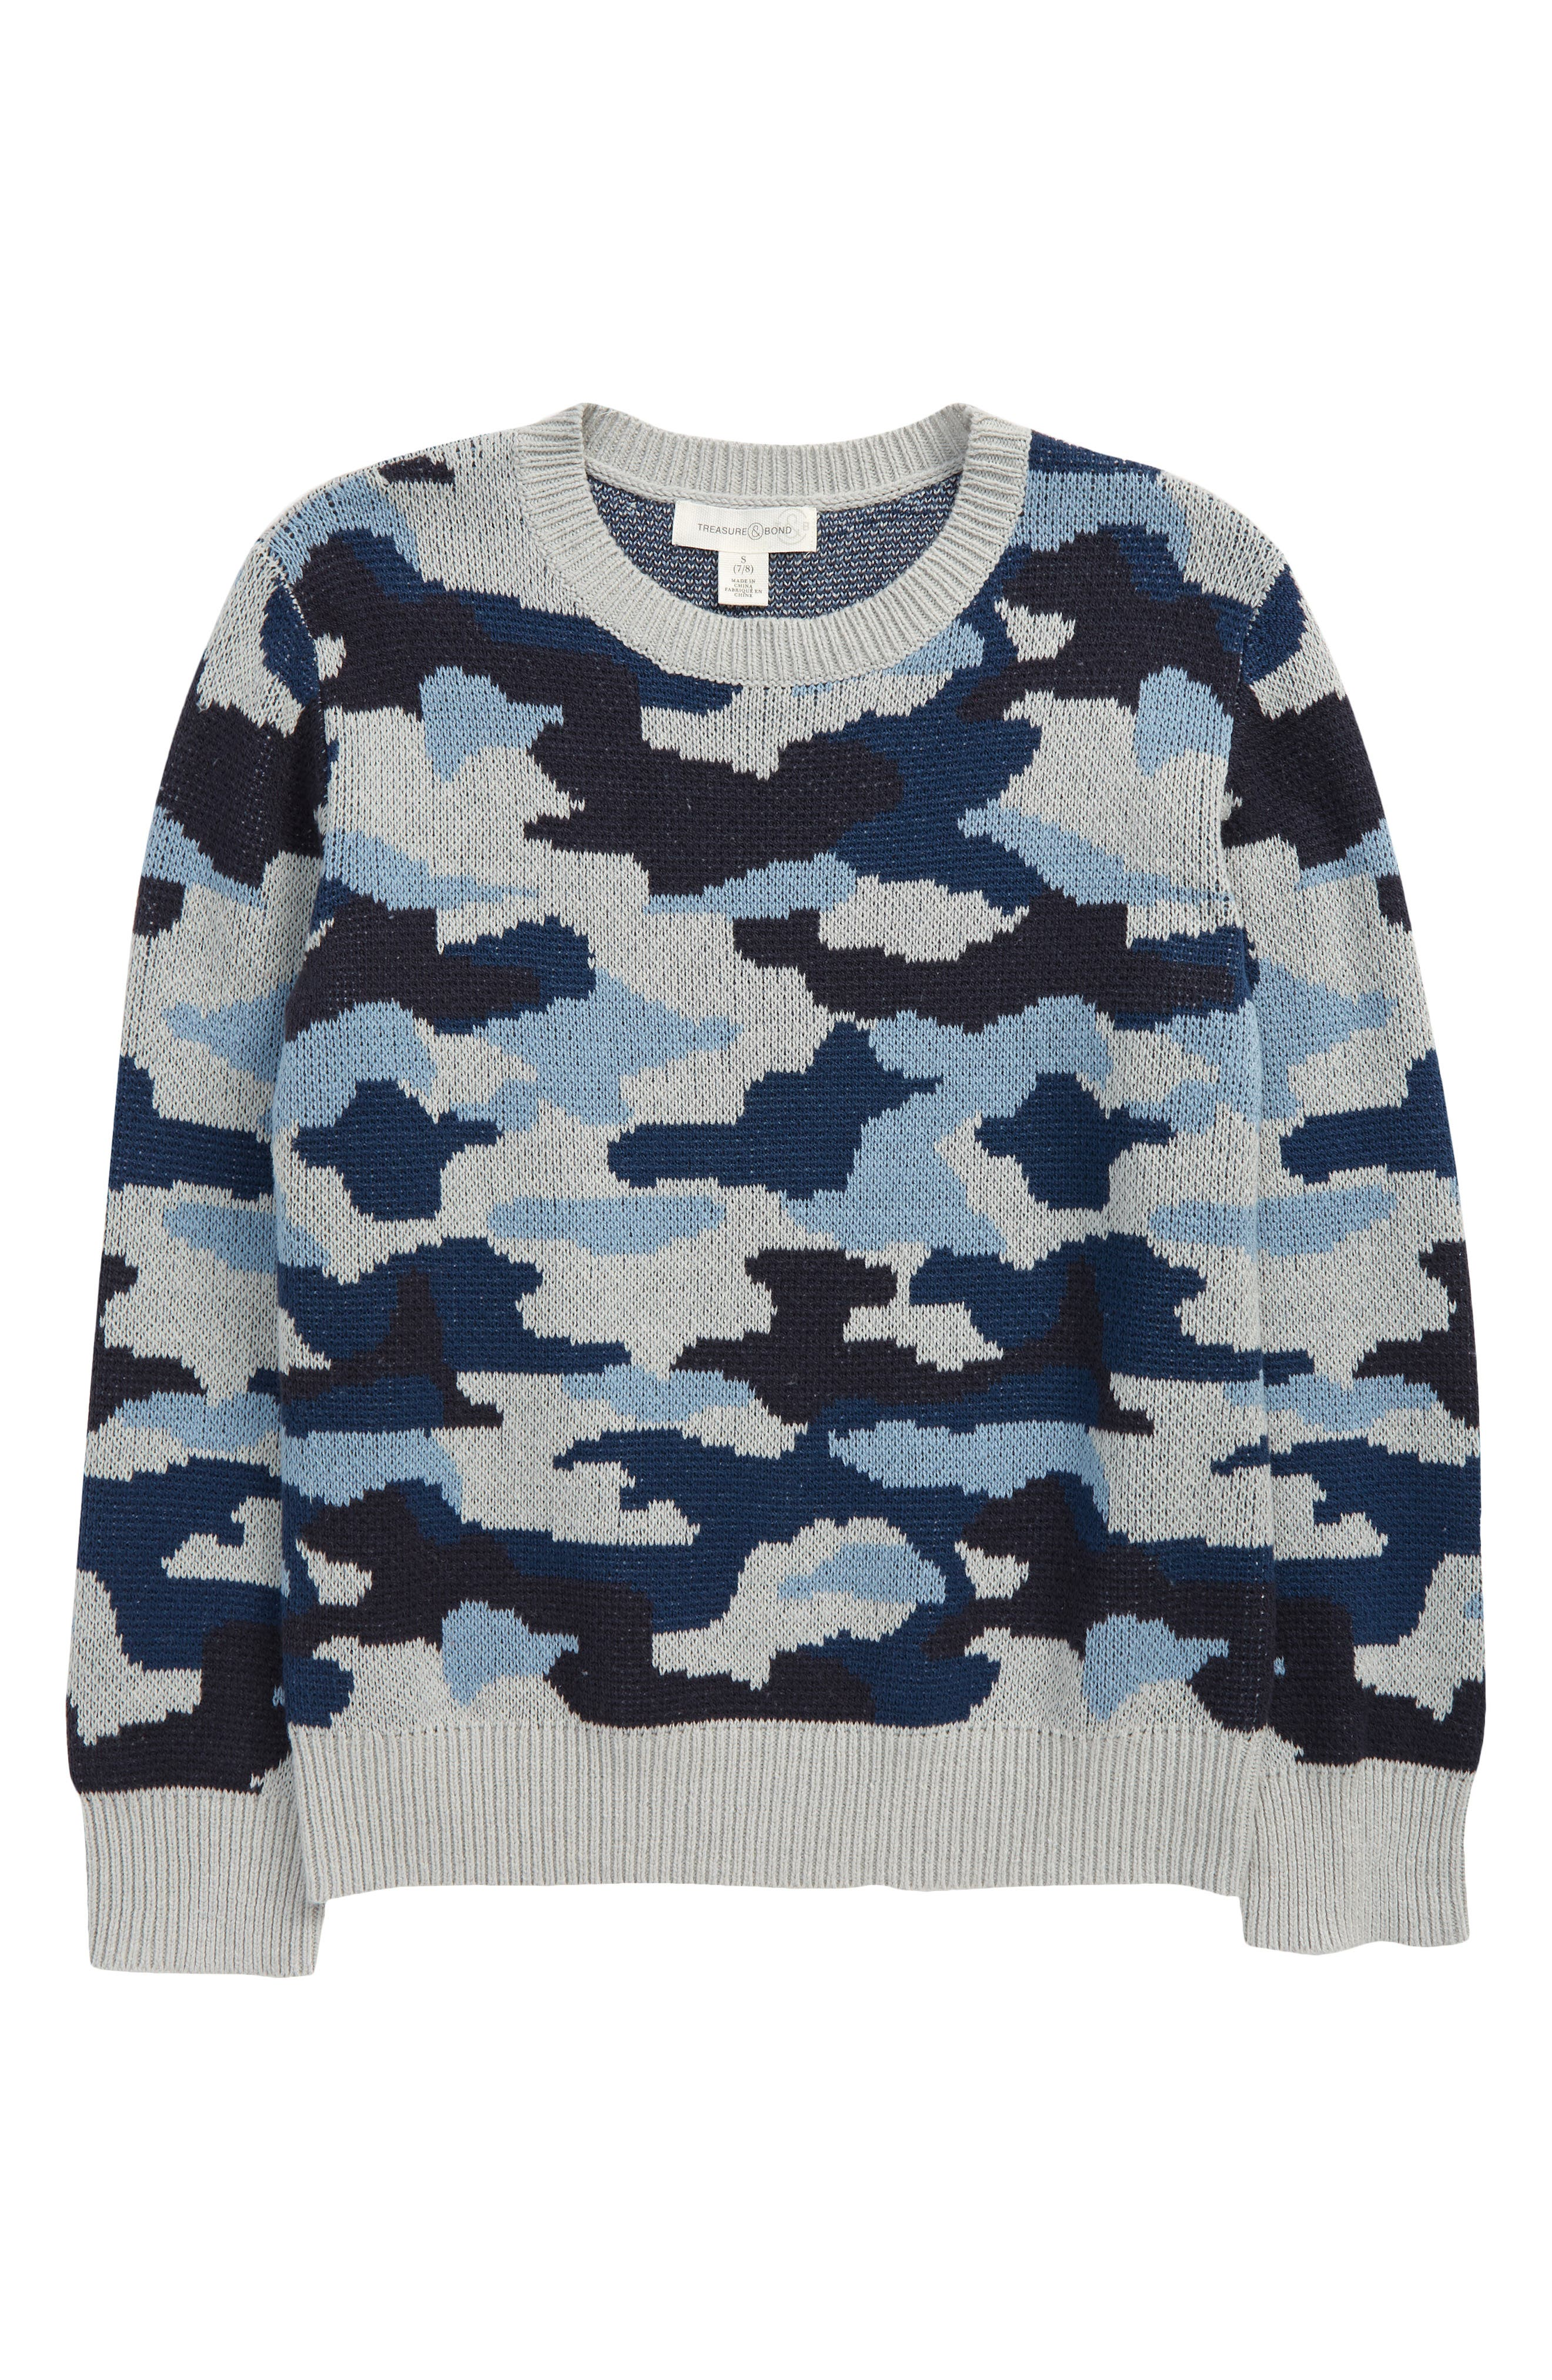 LeeXiang Toddler Boys Pullover Sweaters Kids Winter Knit Cotton Sweatshirts